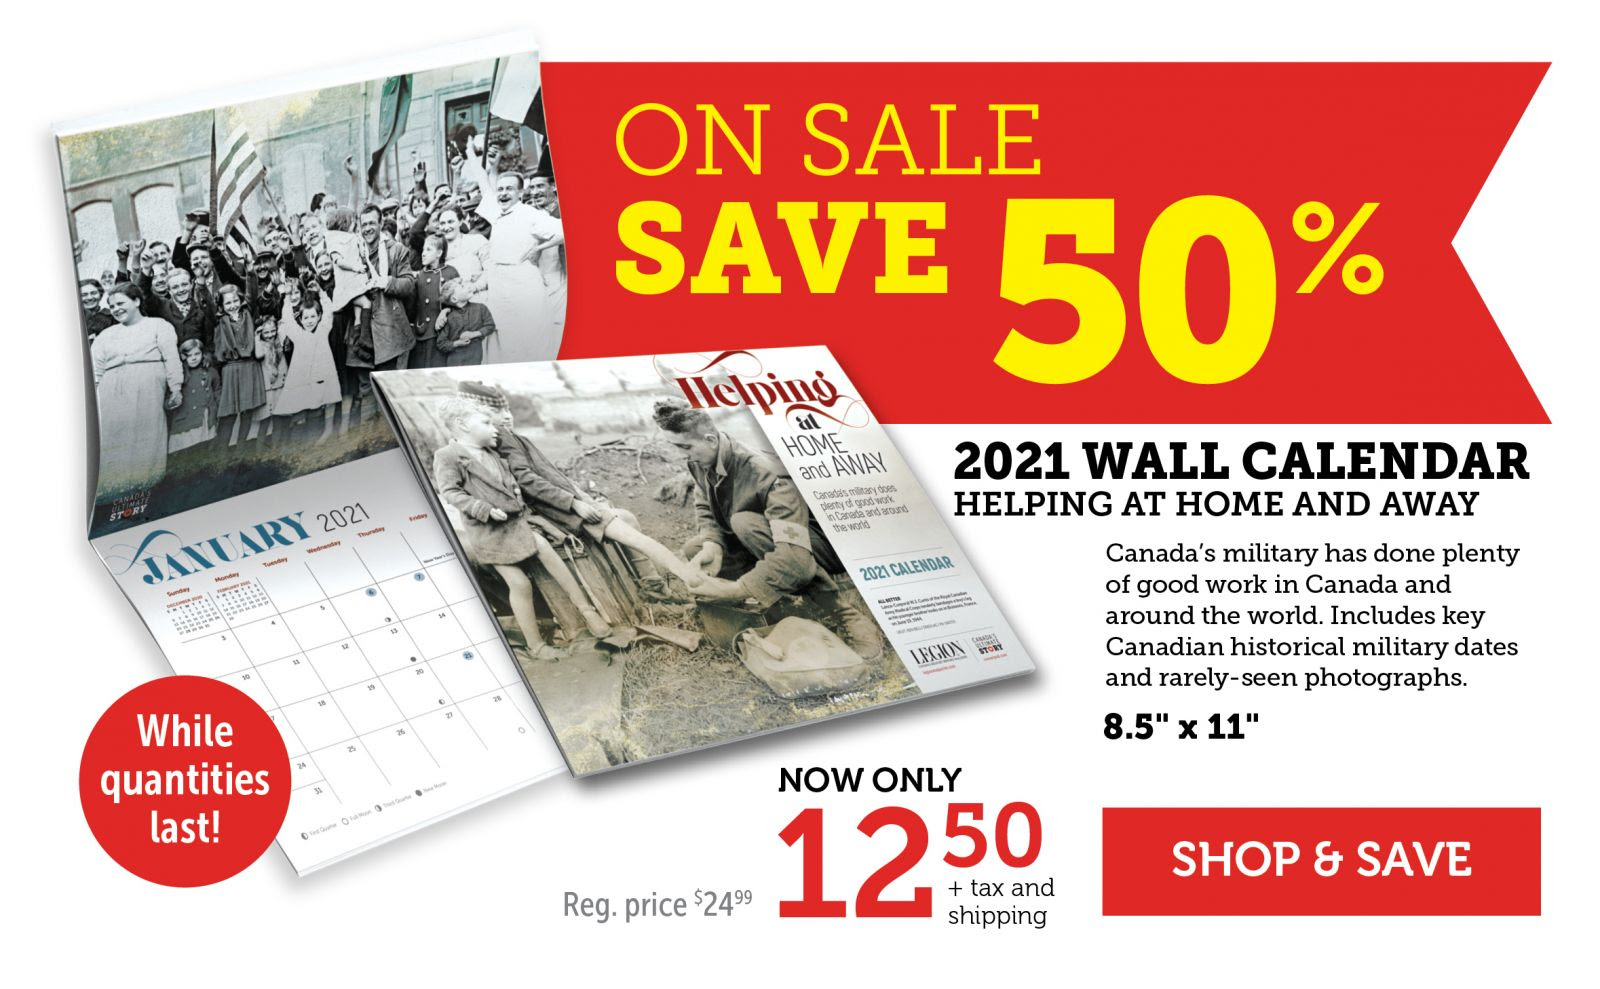 On Sale - Save 50% on 2021 Wall Calendar